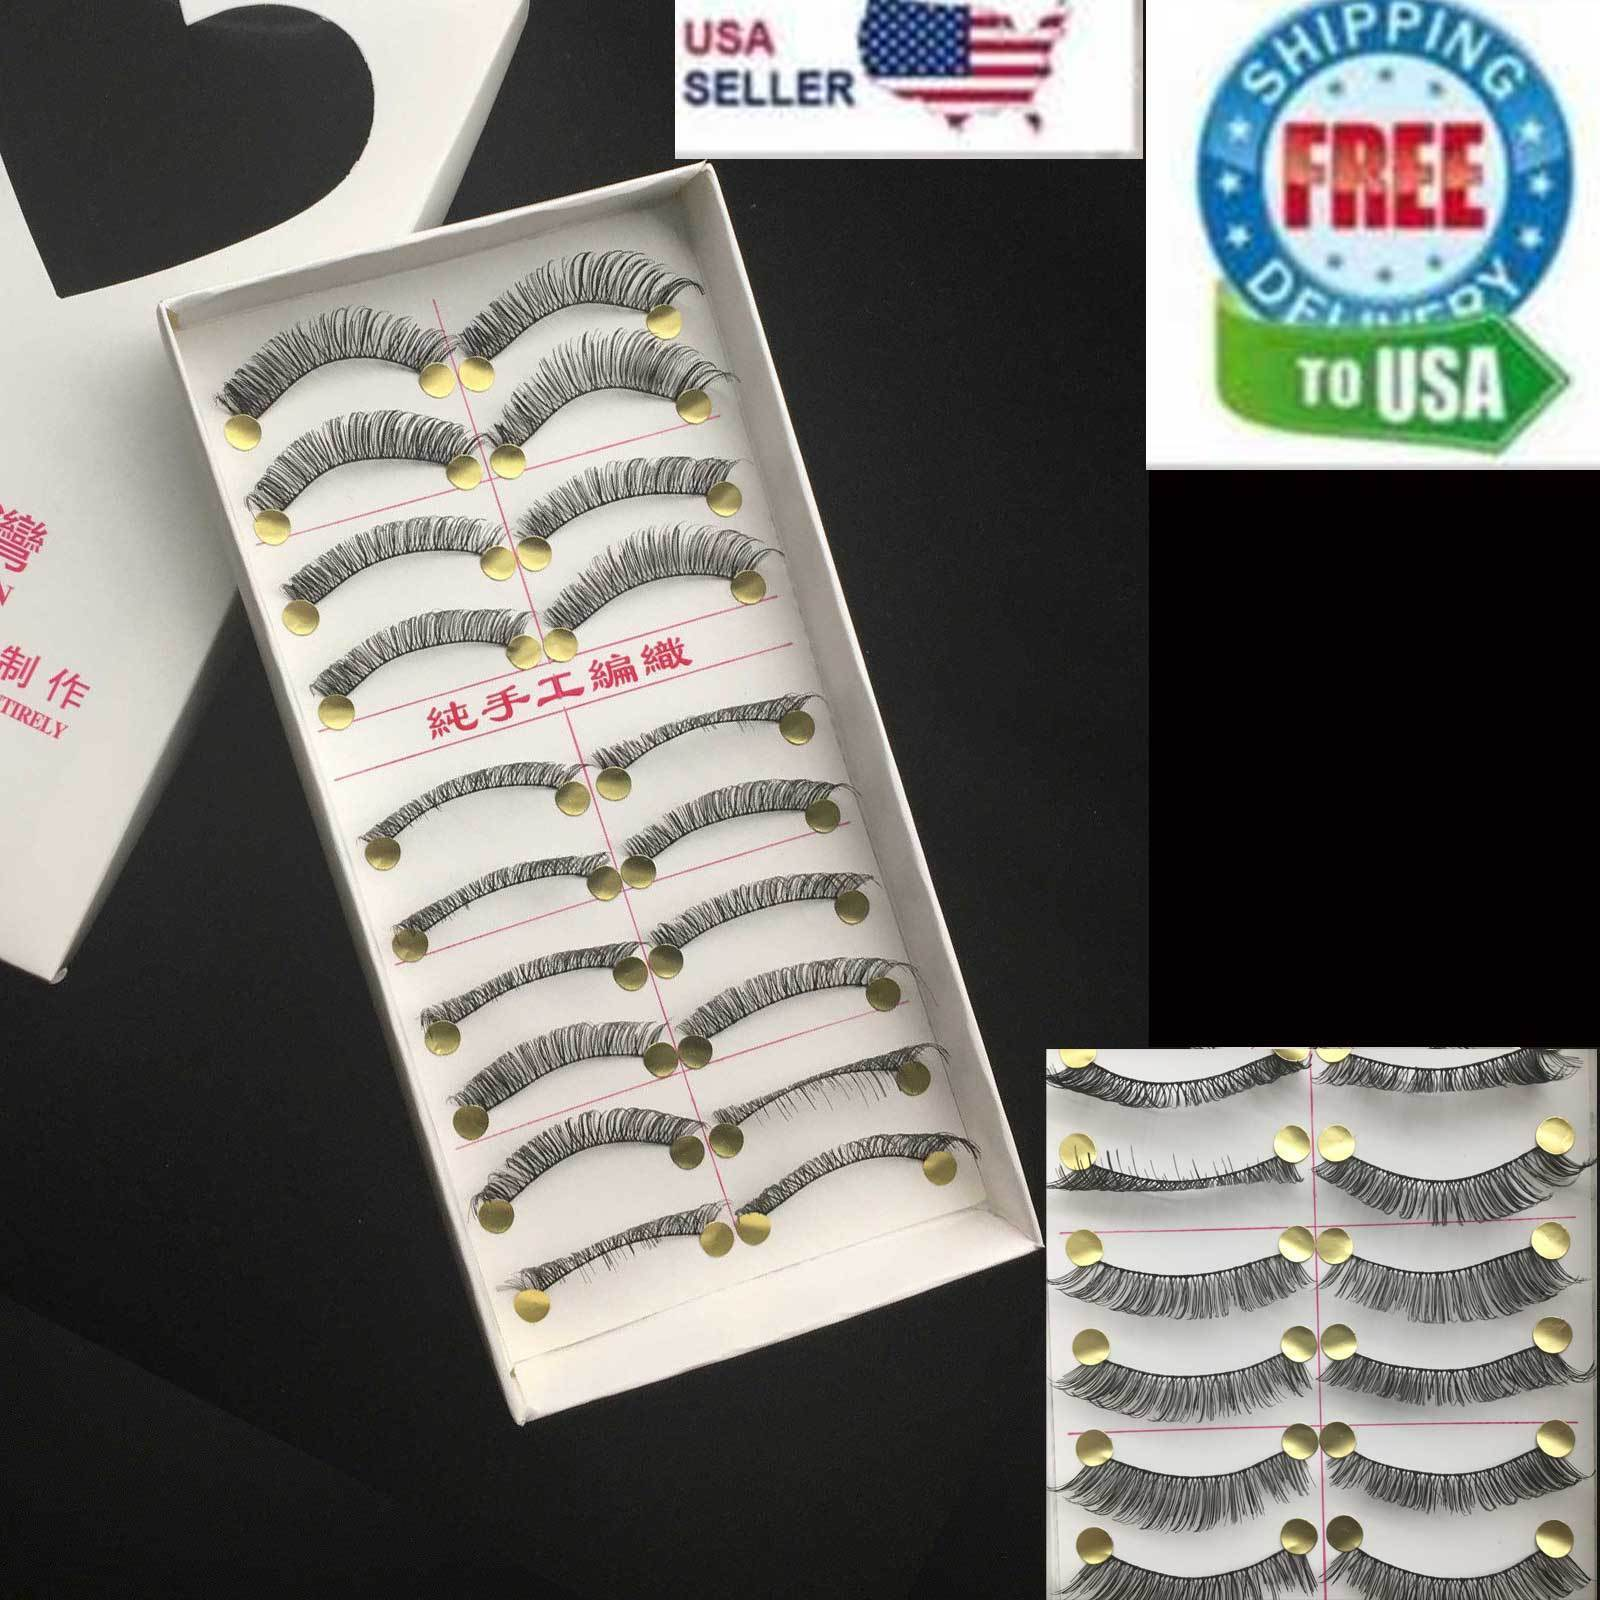 10 Pairs False Eyelashes Natural Long Eye Lashes Handmade Thick BLACK Makeup 504 Eyes